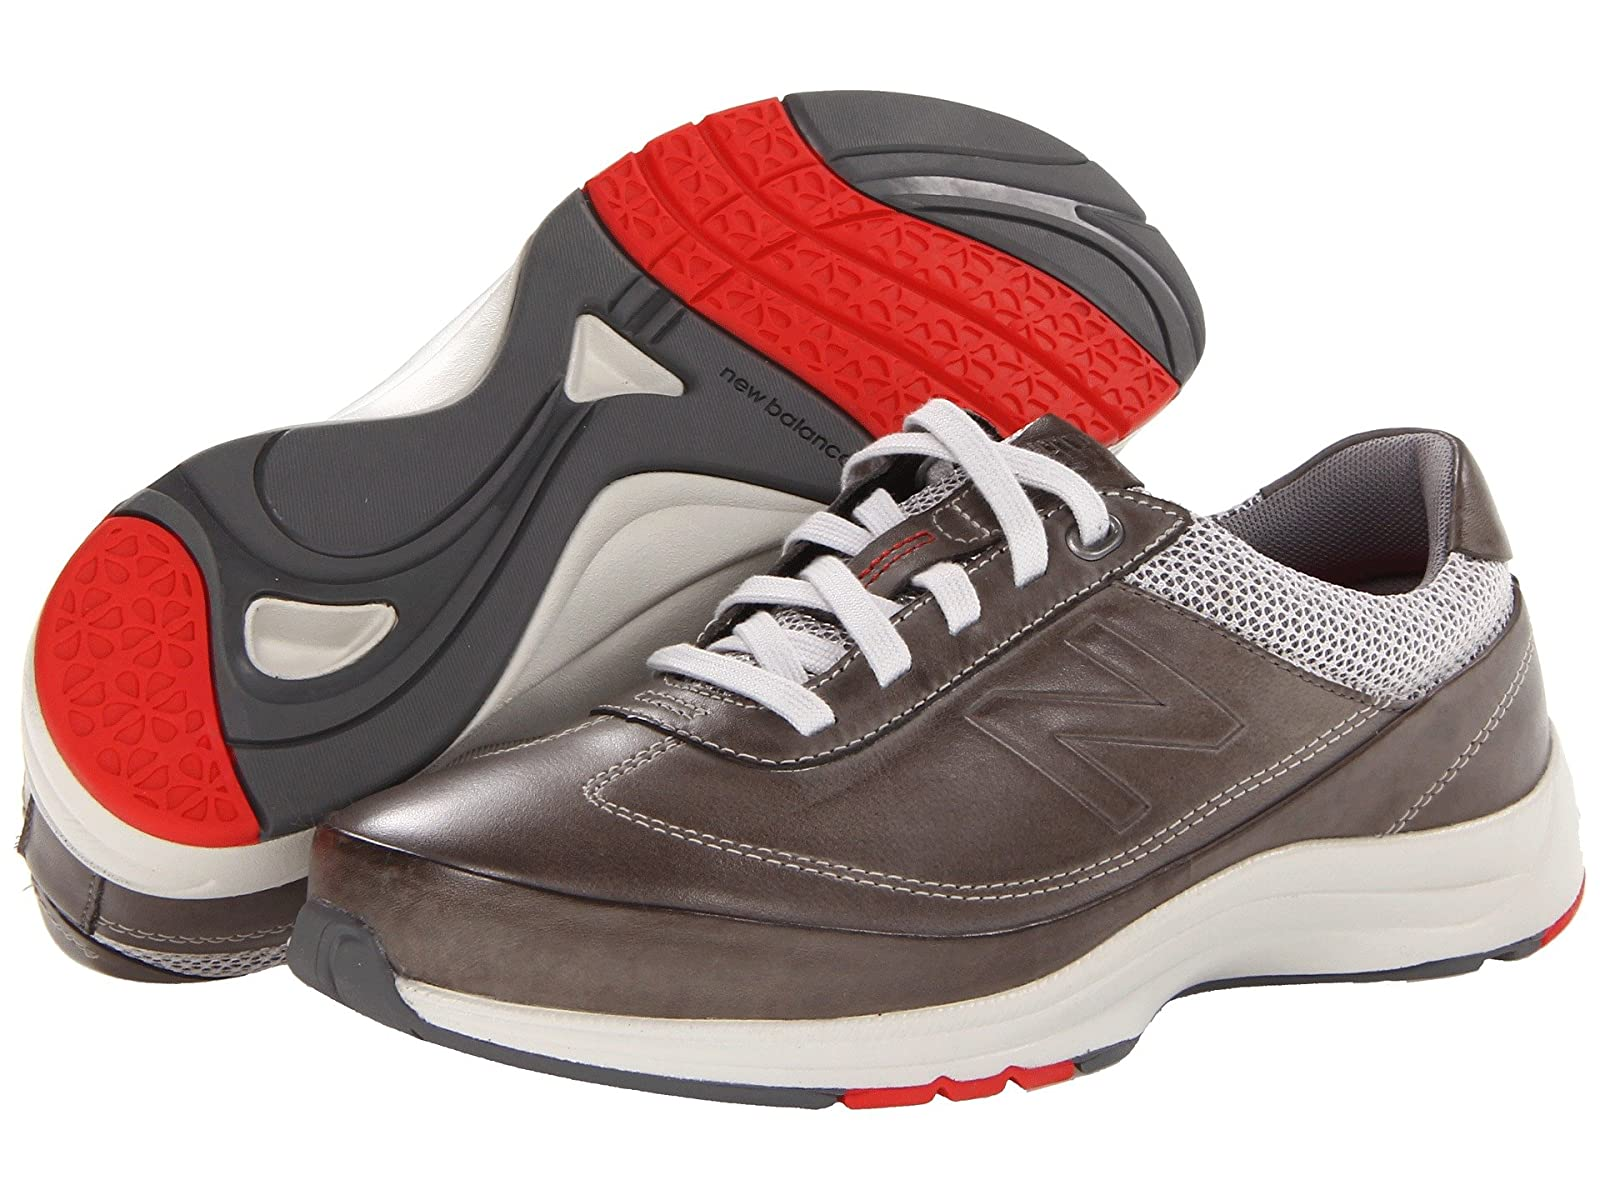 New Balance WW980Cheap and distinctive eye-catching shoes